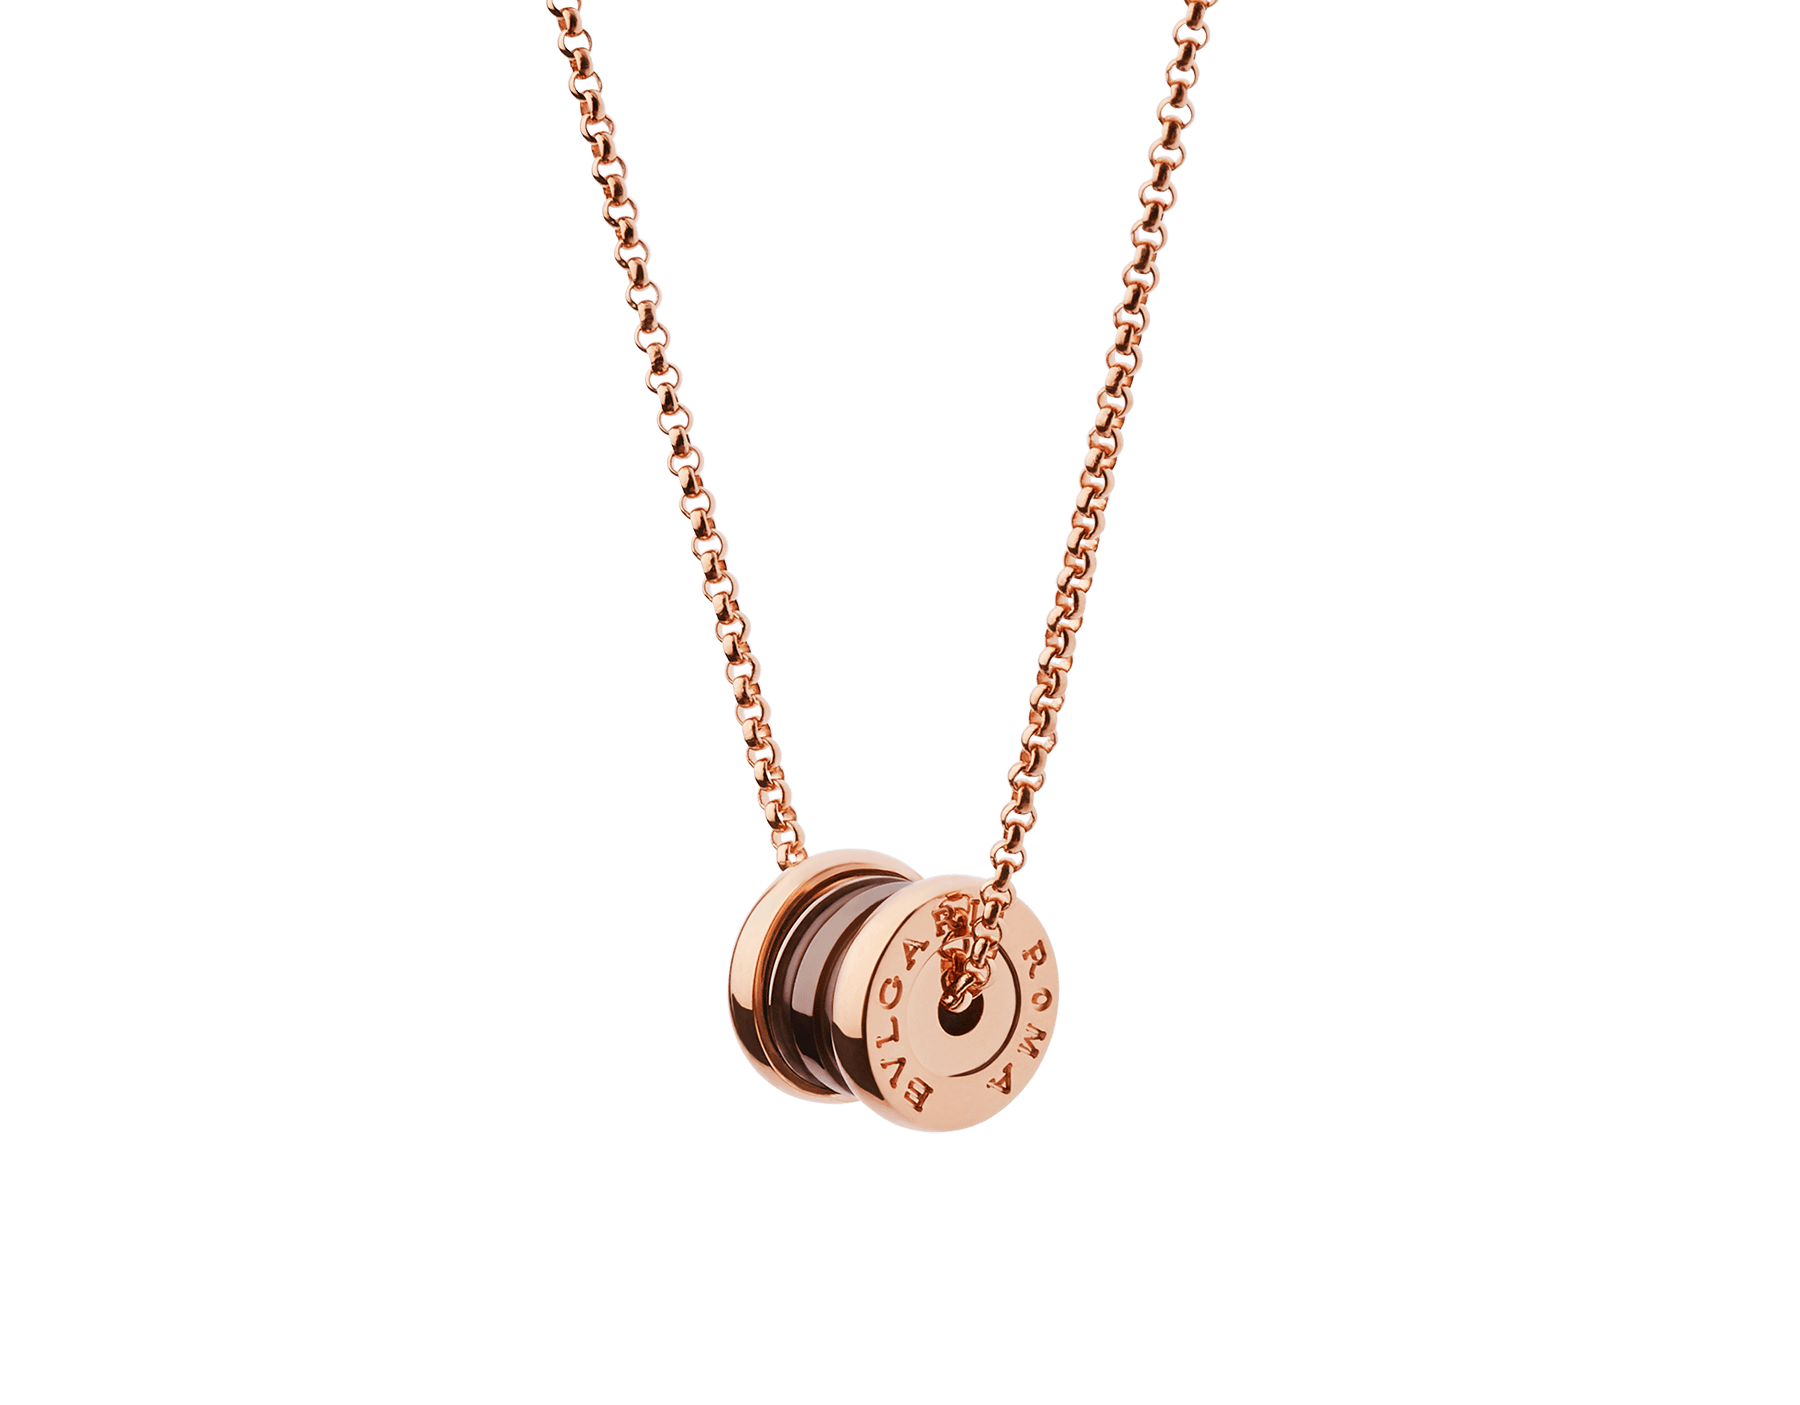 B.zero1 necklace with 18 kt rose gold chain and pendant in 18 kt rose gold and cermet. 358379 image 2